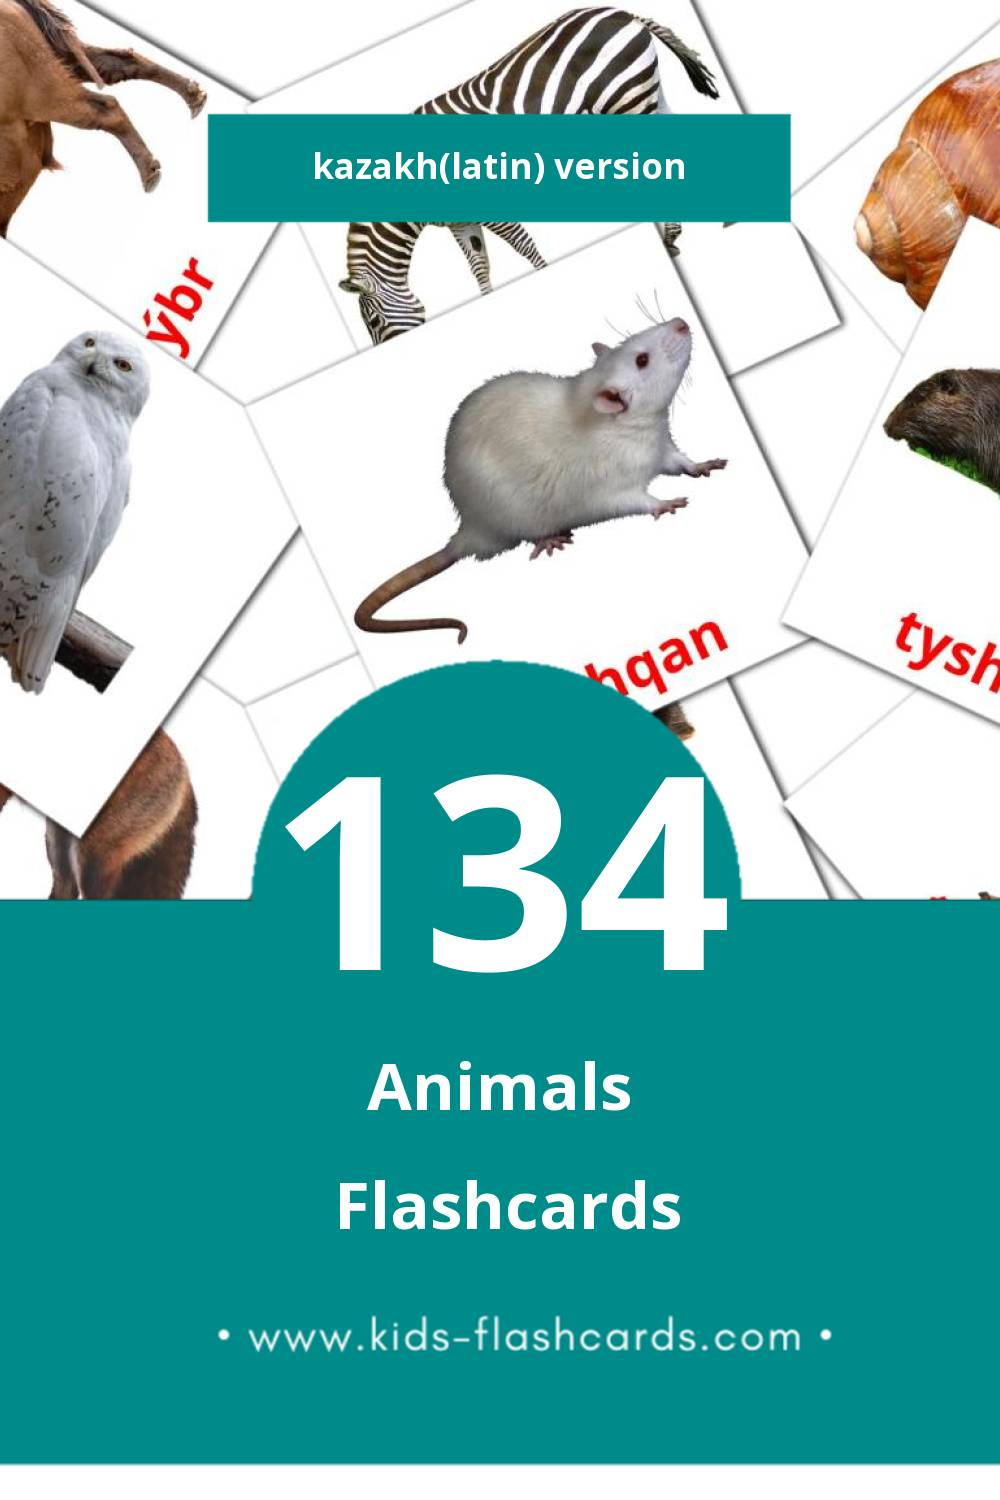 Visual Janýarlar Flashcards for Toddlers (134 cards in Kazakh(latin))